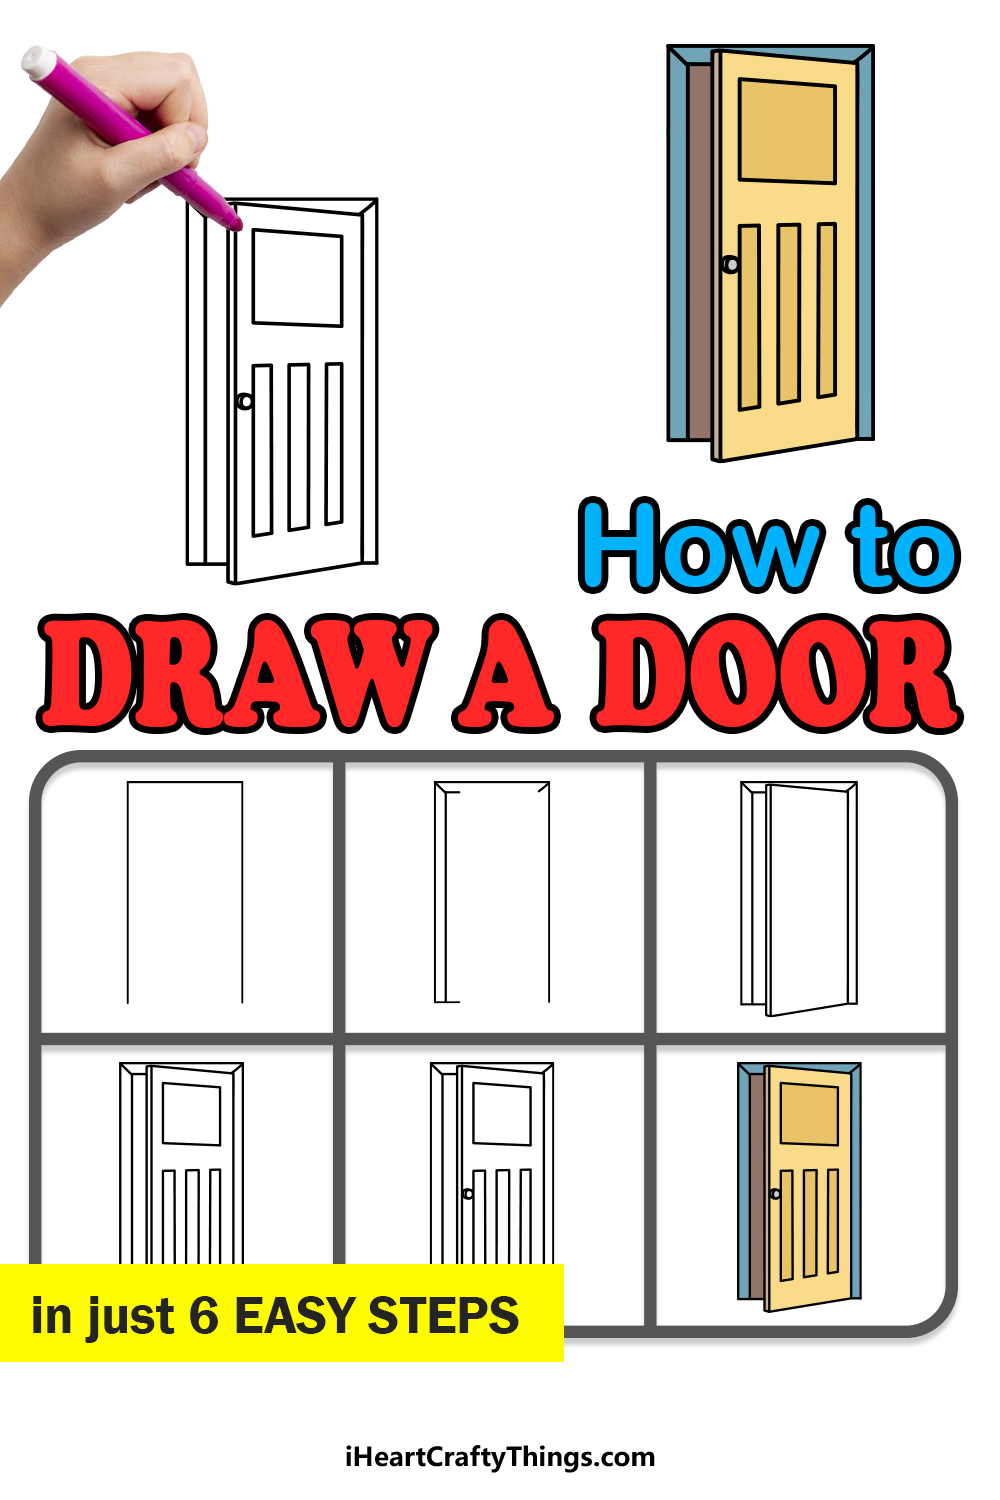 how to draw a door in 6 easy steps